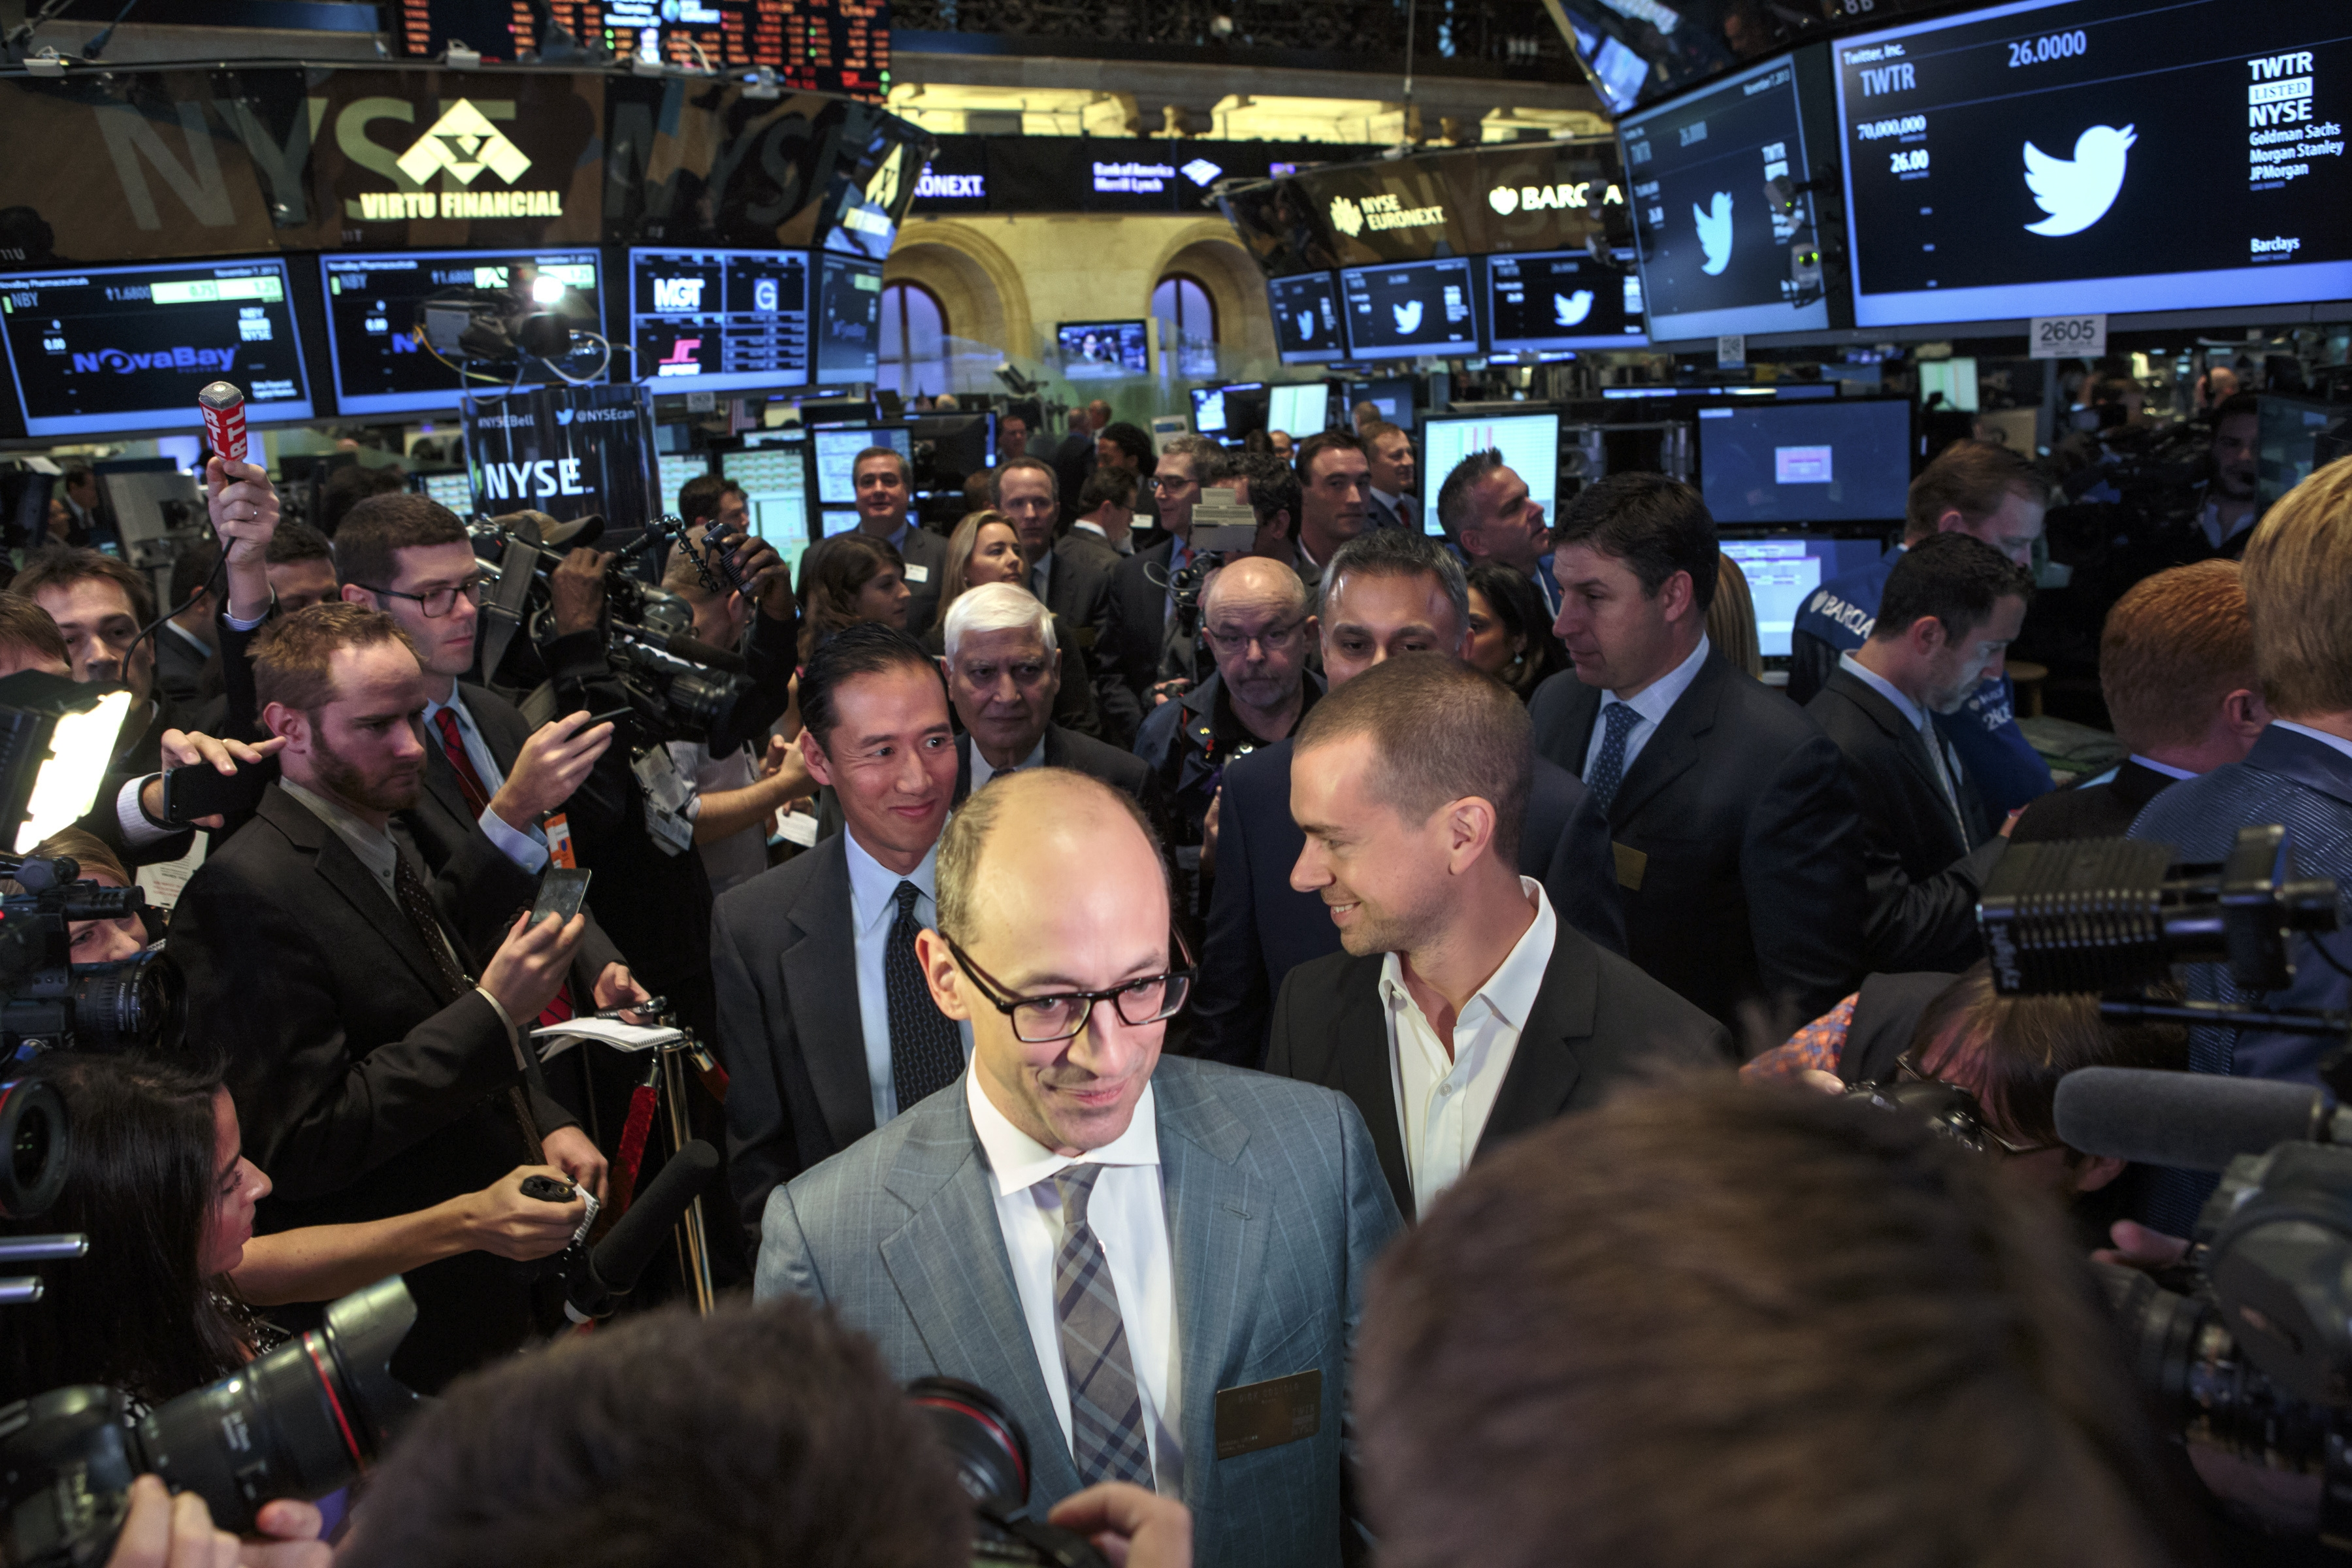 Twitter CEO Dick Costolo talks with traders at the New York Stock Exchange on Thursday, when the company made its initial public offering, selling 70 million shares.